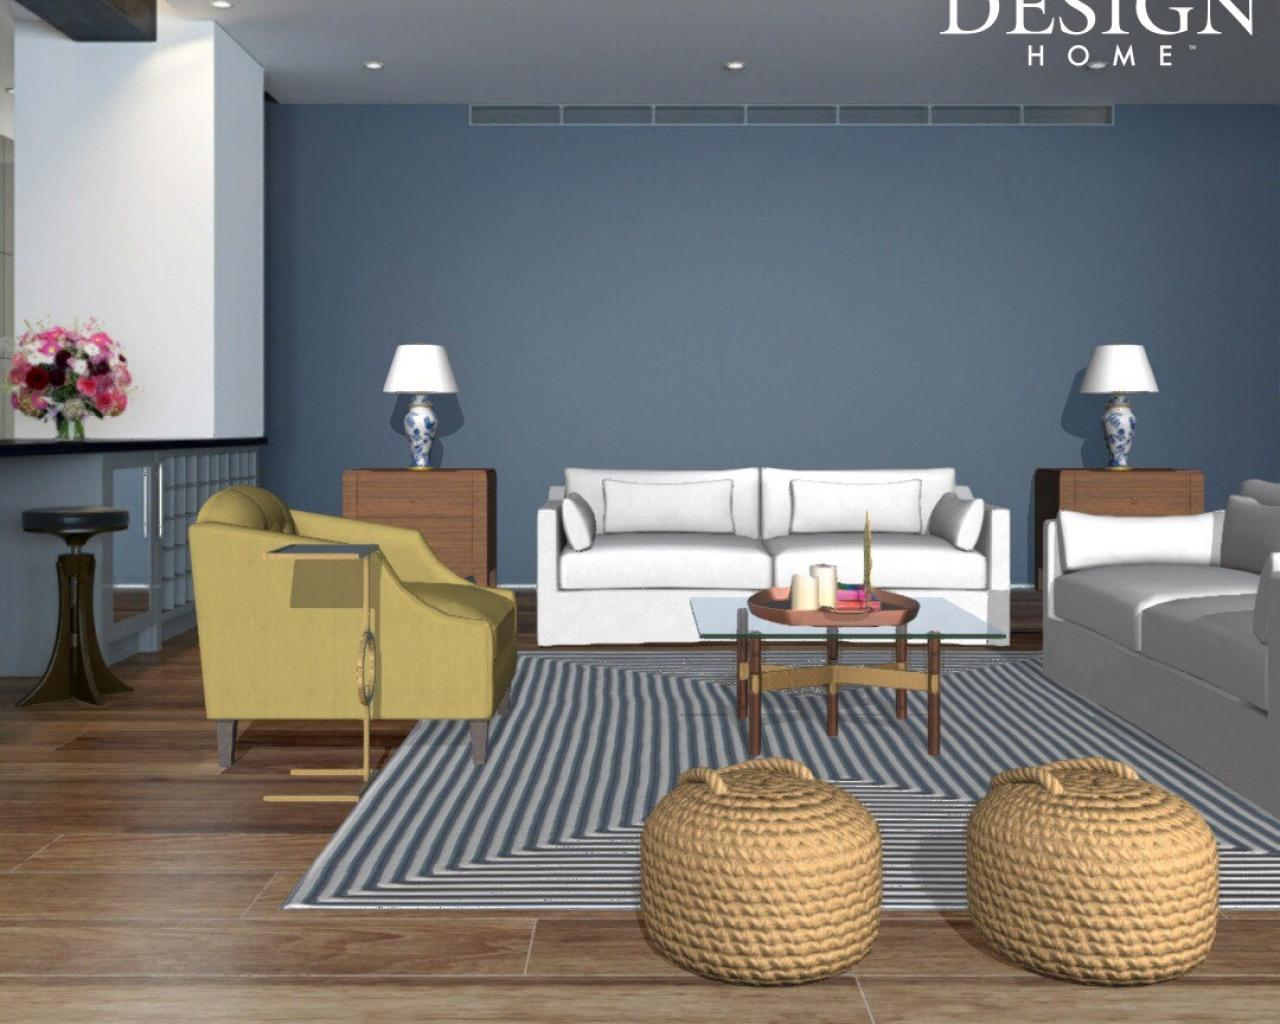 Be An Interior Designer With Design Home App Hgtv 39 S